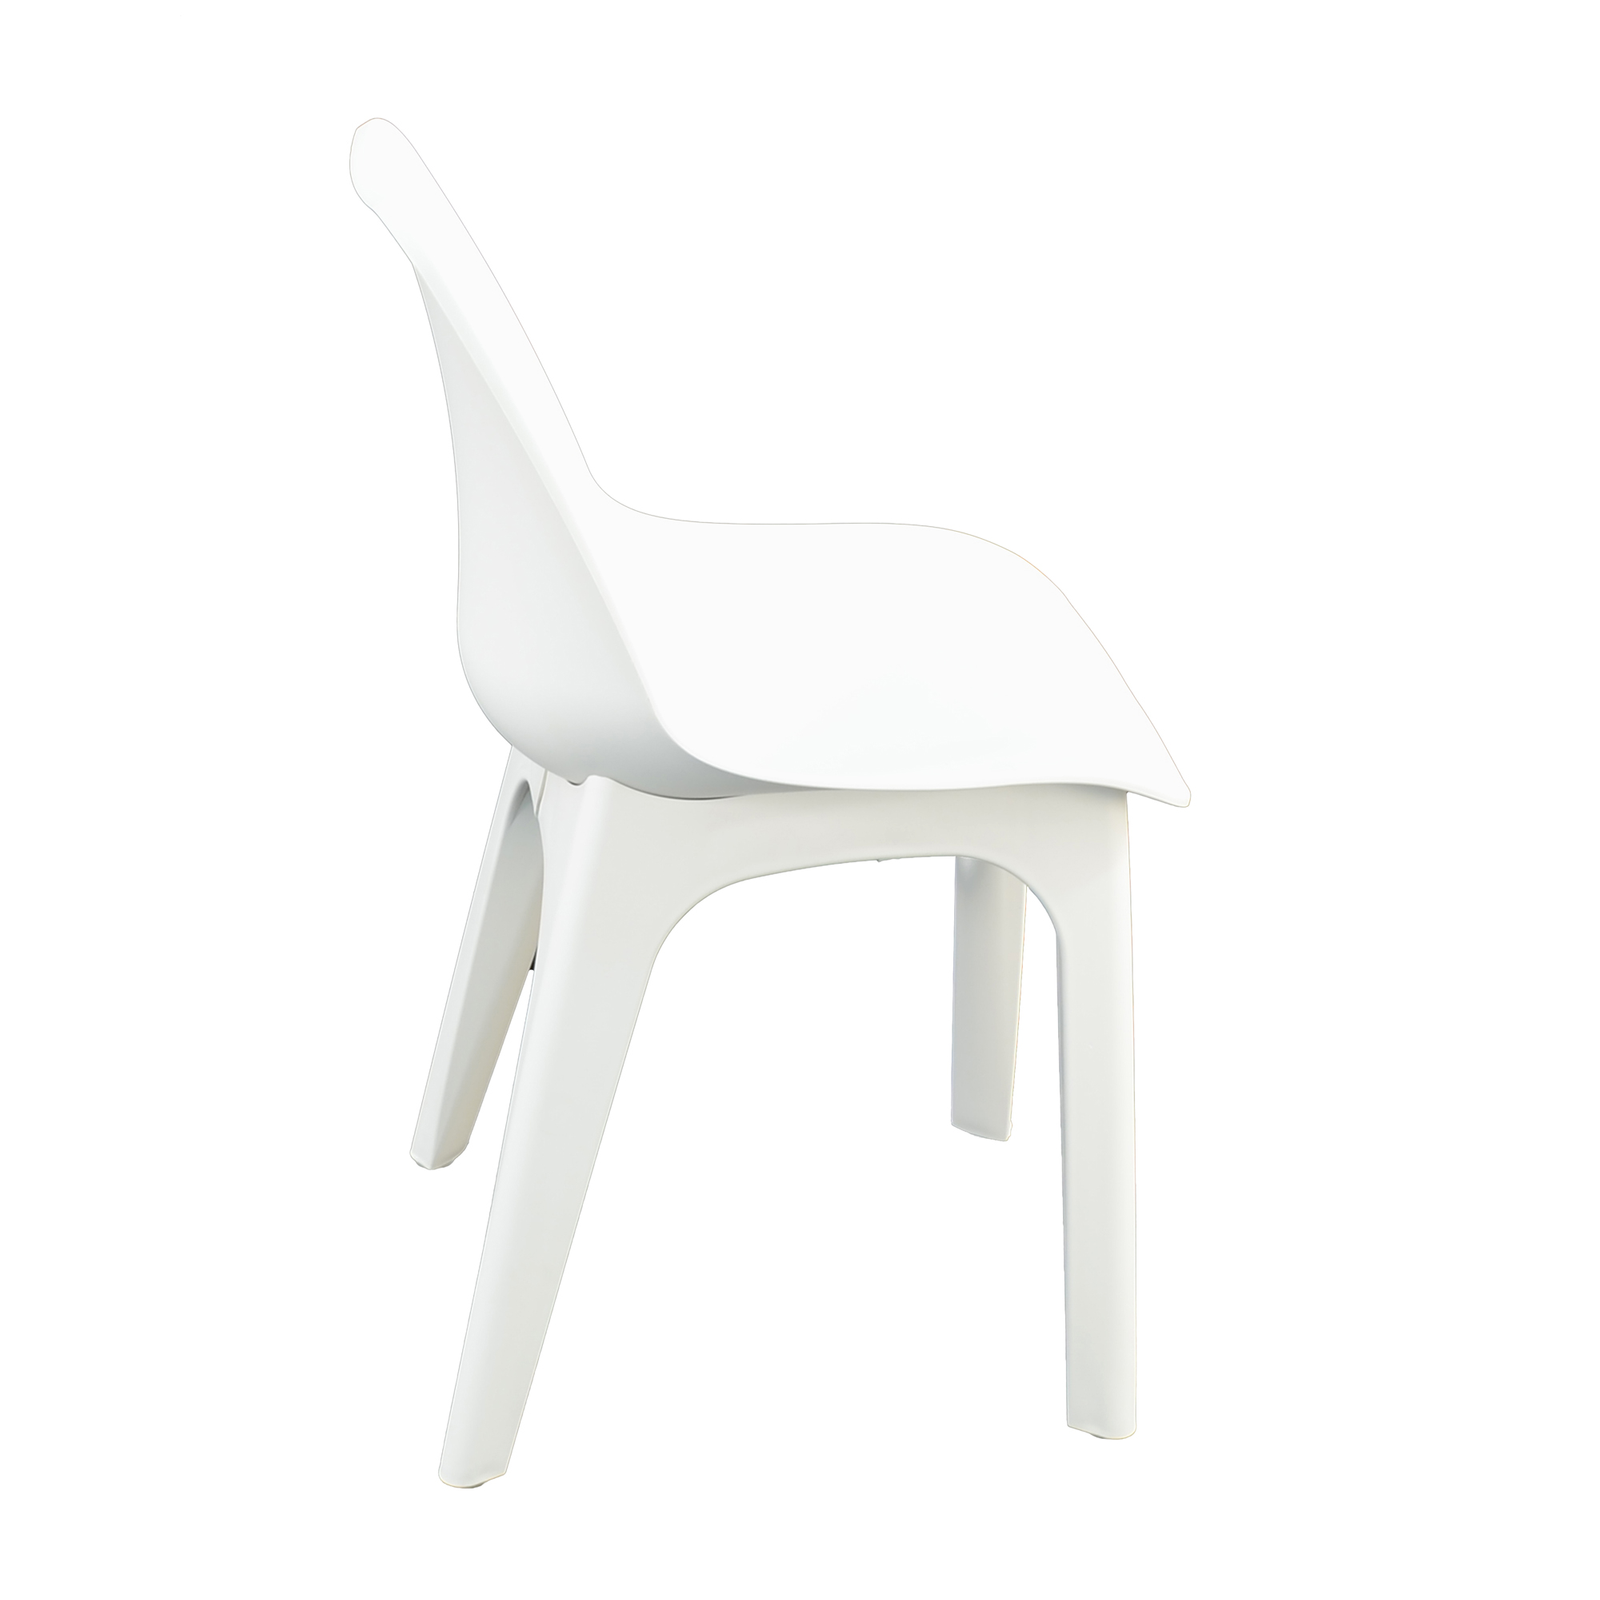 Trabella White Levante Dining Table With 2 Eolo Chairs